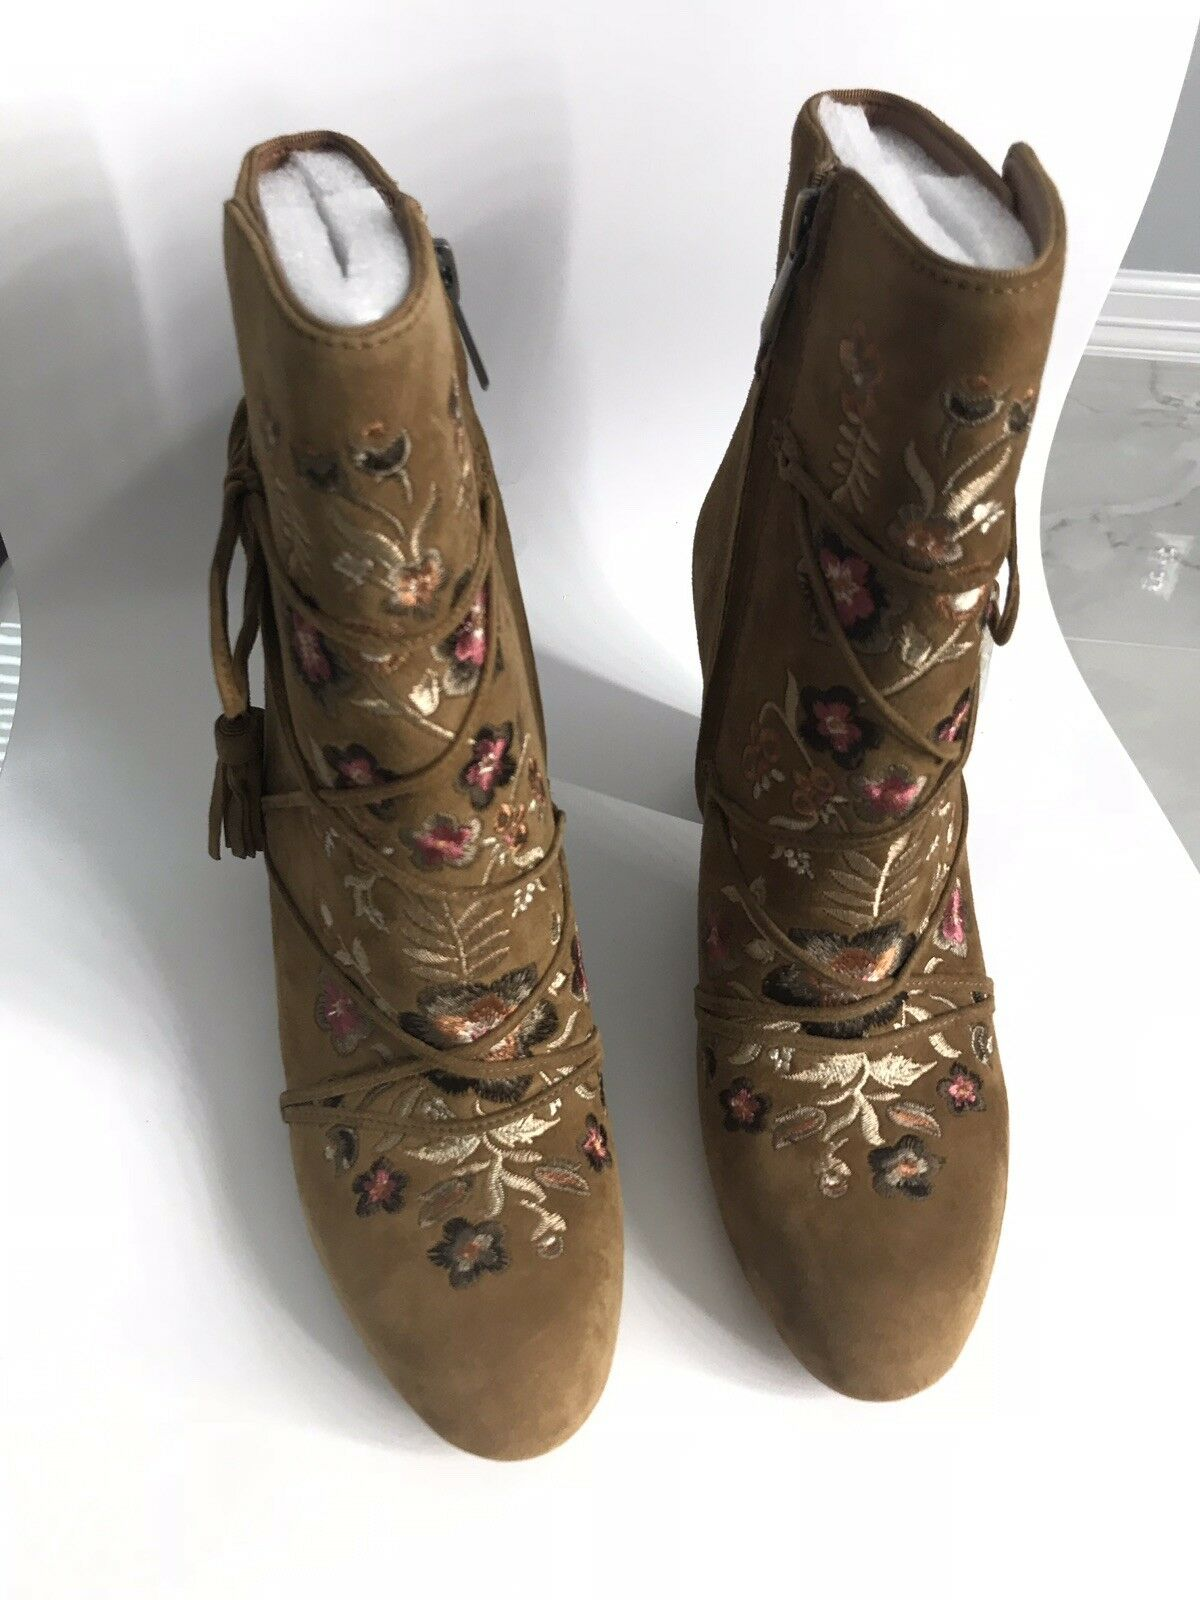 Sam Edelman Winnie Suede Embroidered Ankle Booties Size 8 Whisky